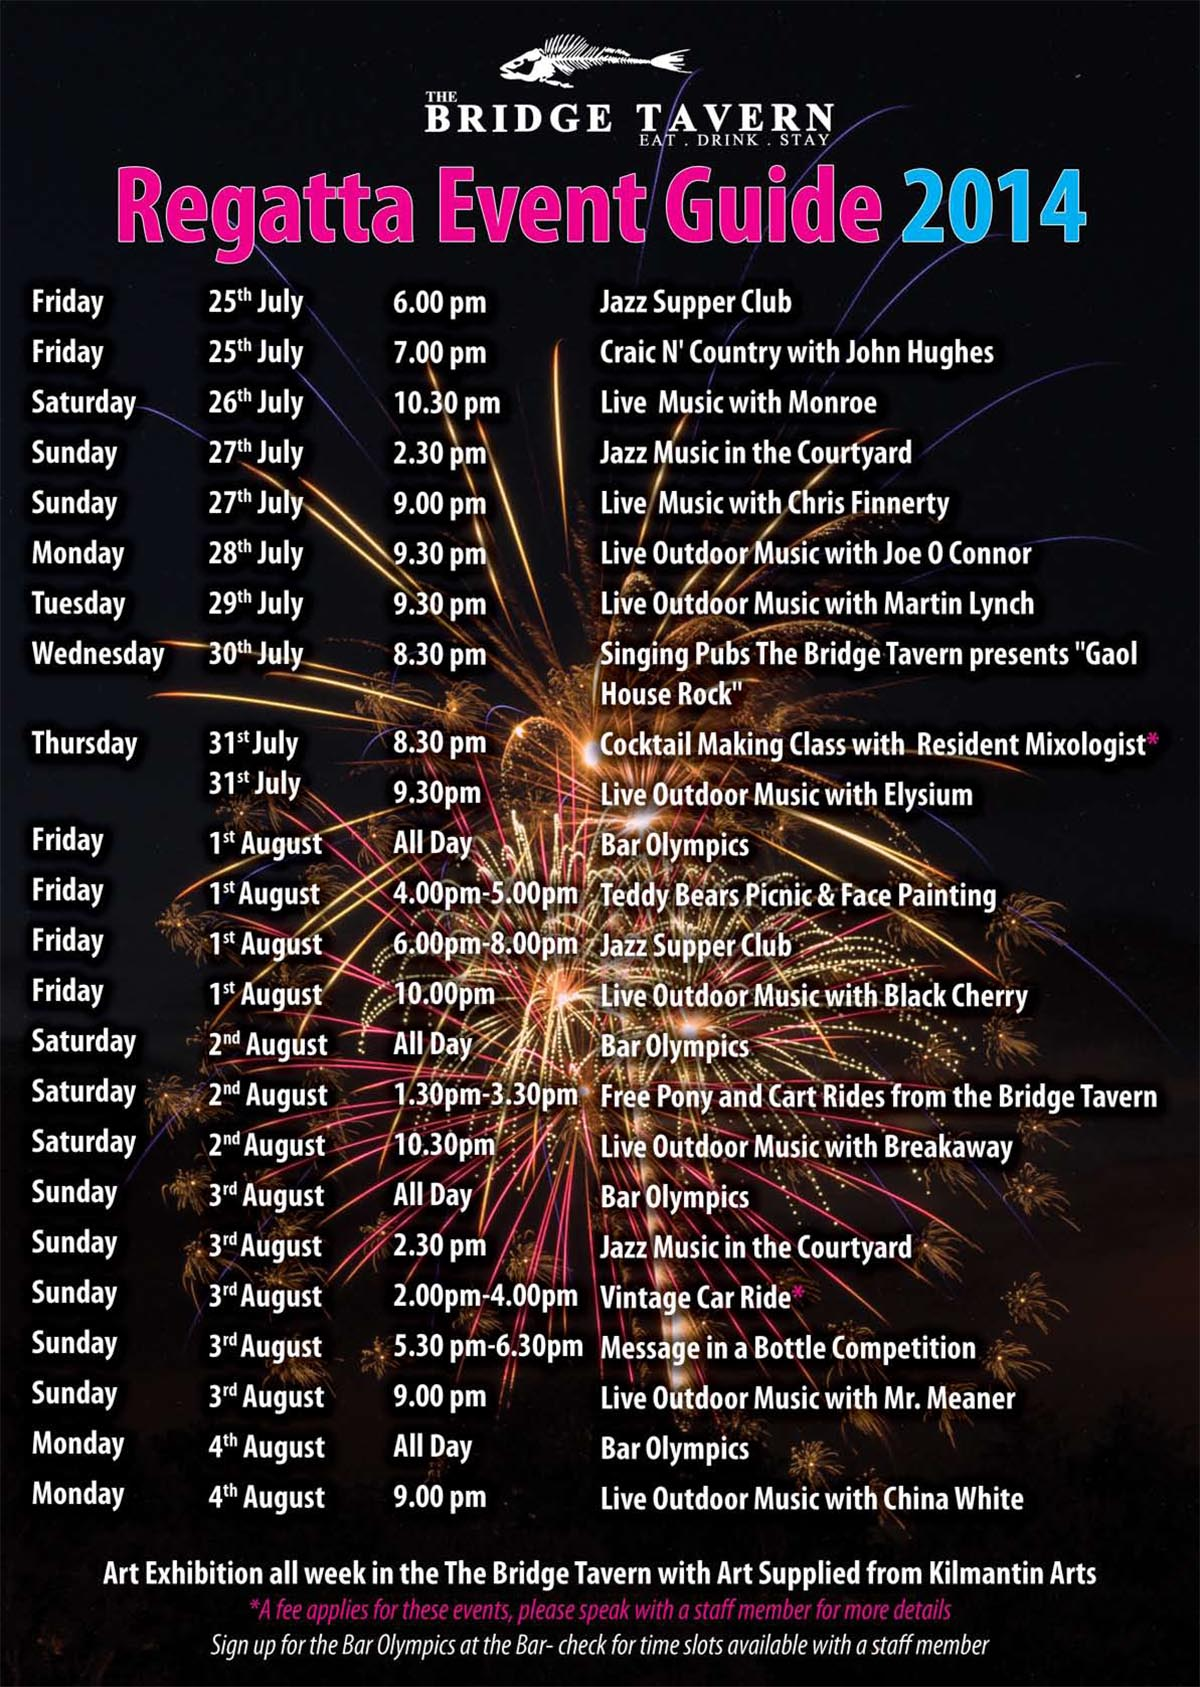 Bridge Tavern Regatta Event List